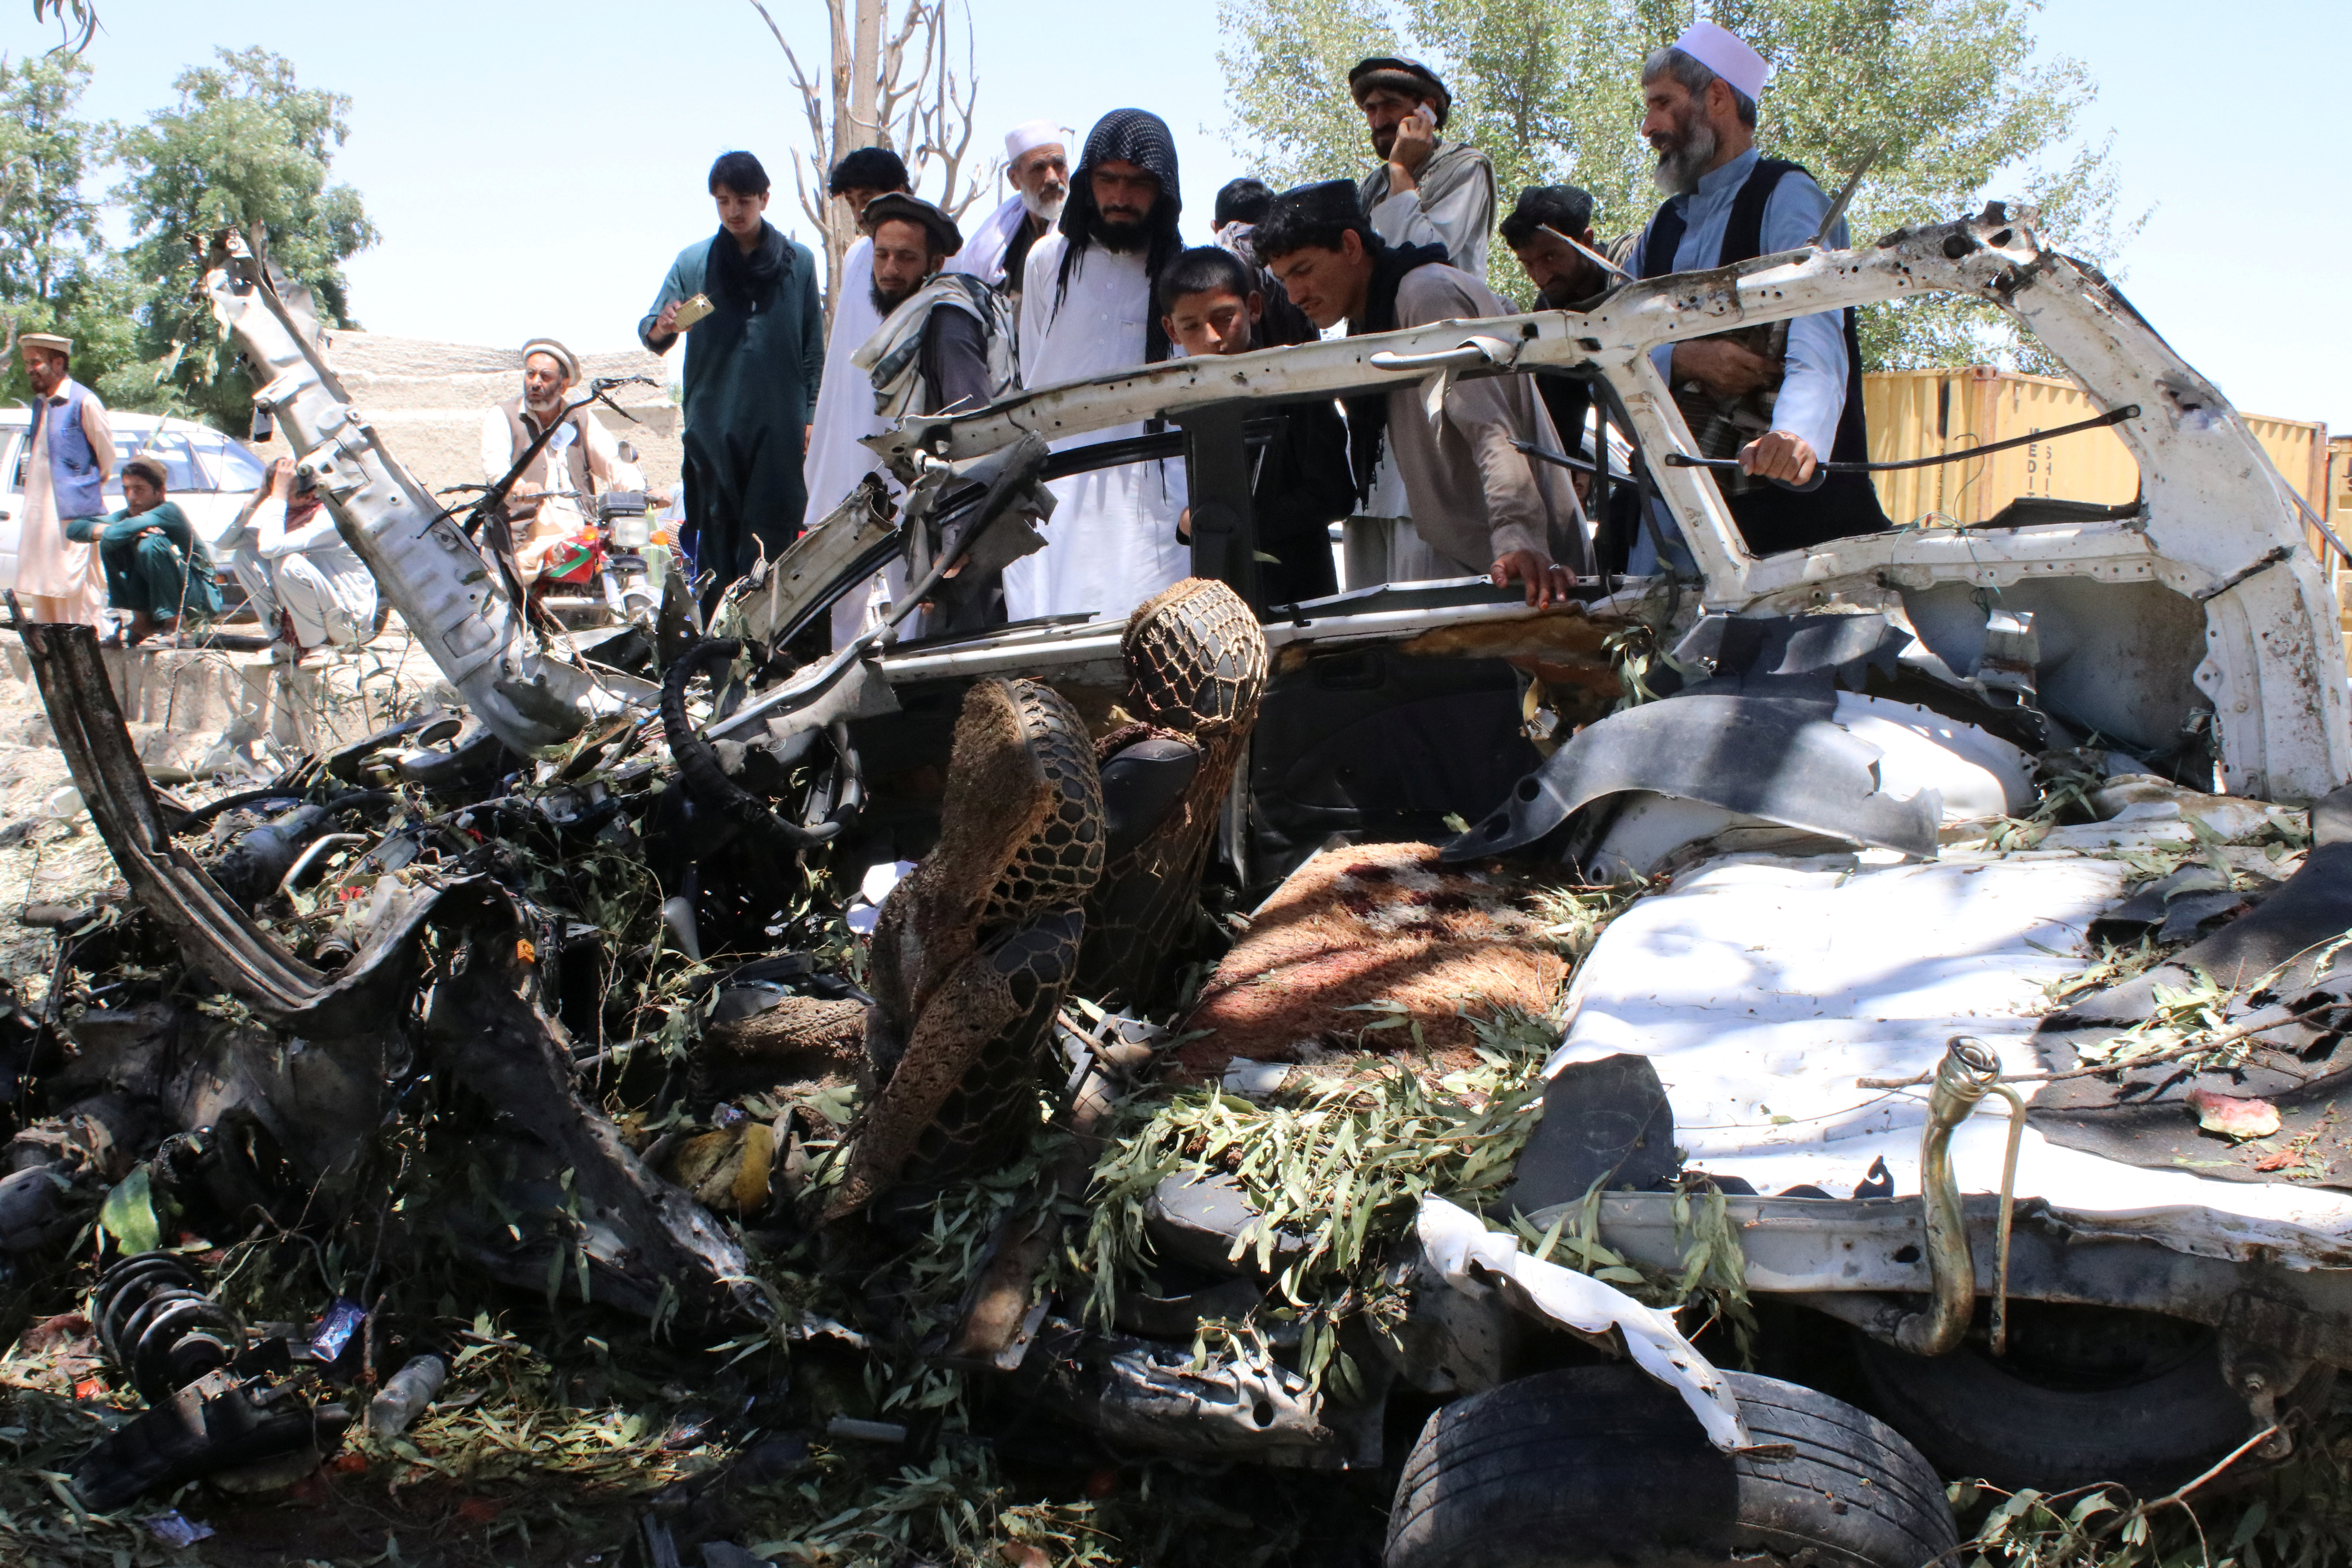 Afghan men inspect a car damaged in a suicide car bomb attack in Khost province, May 27, 2017.